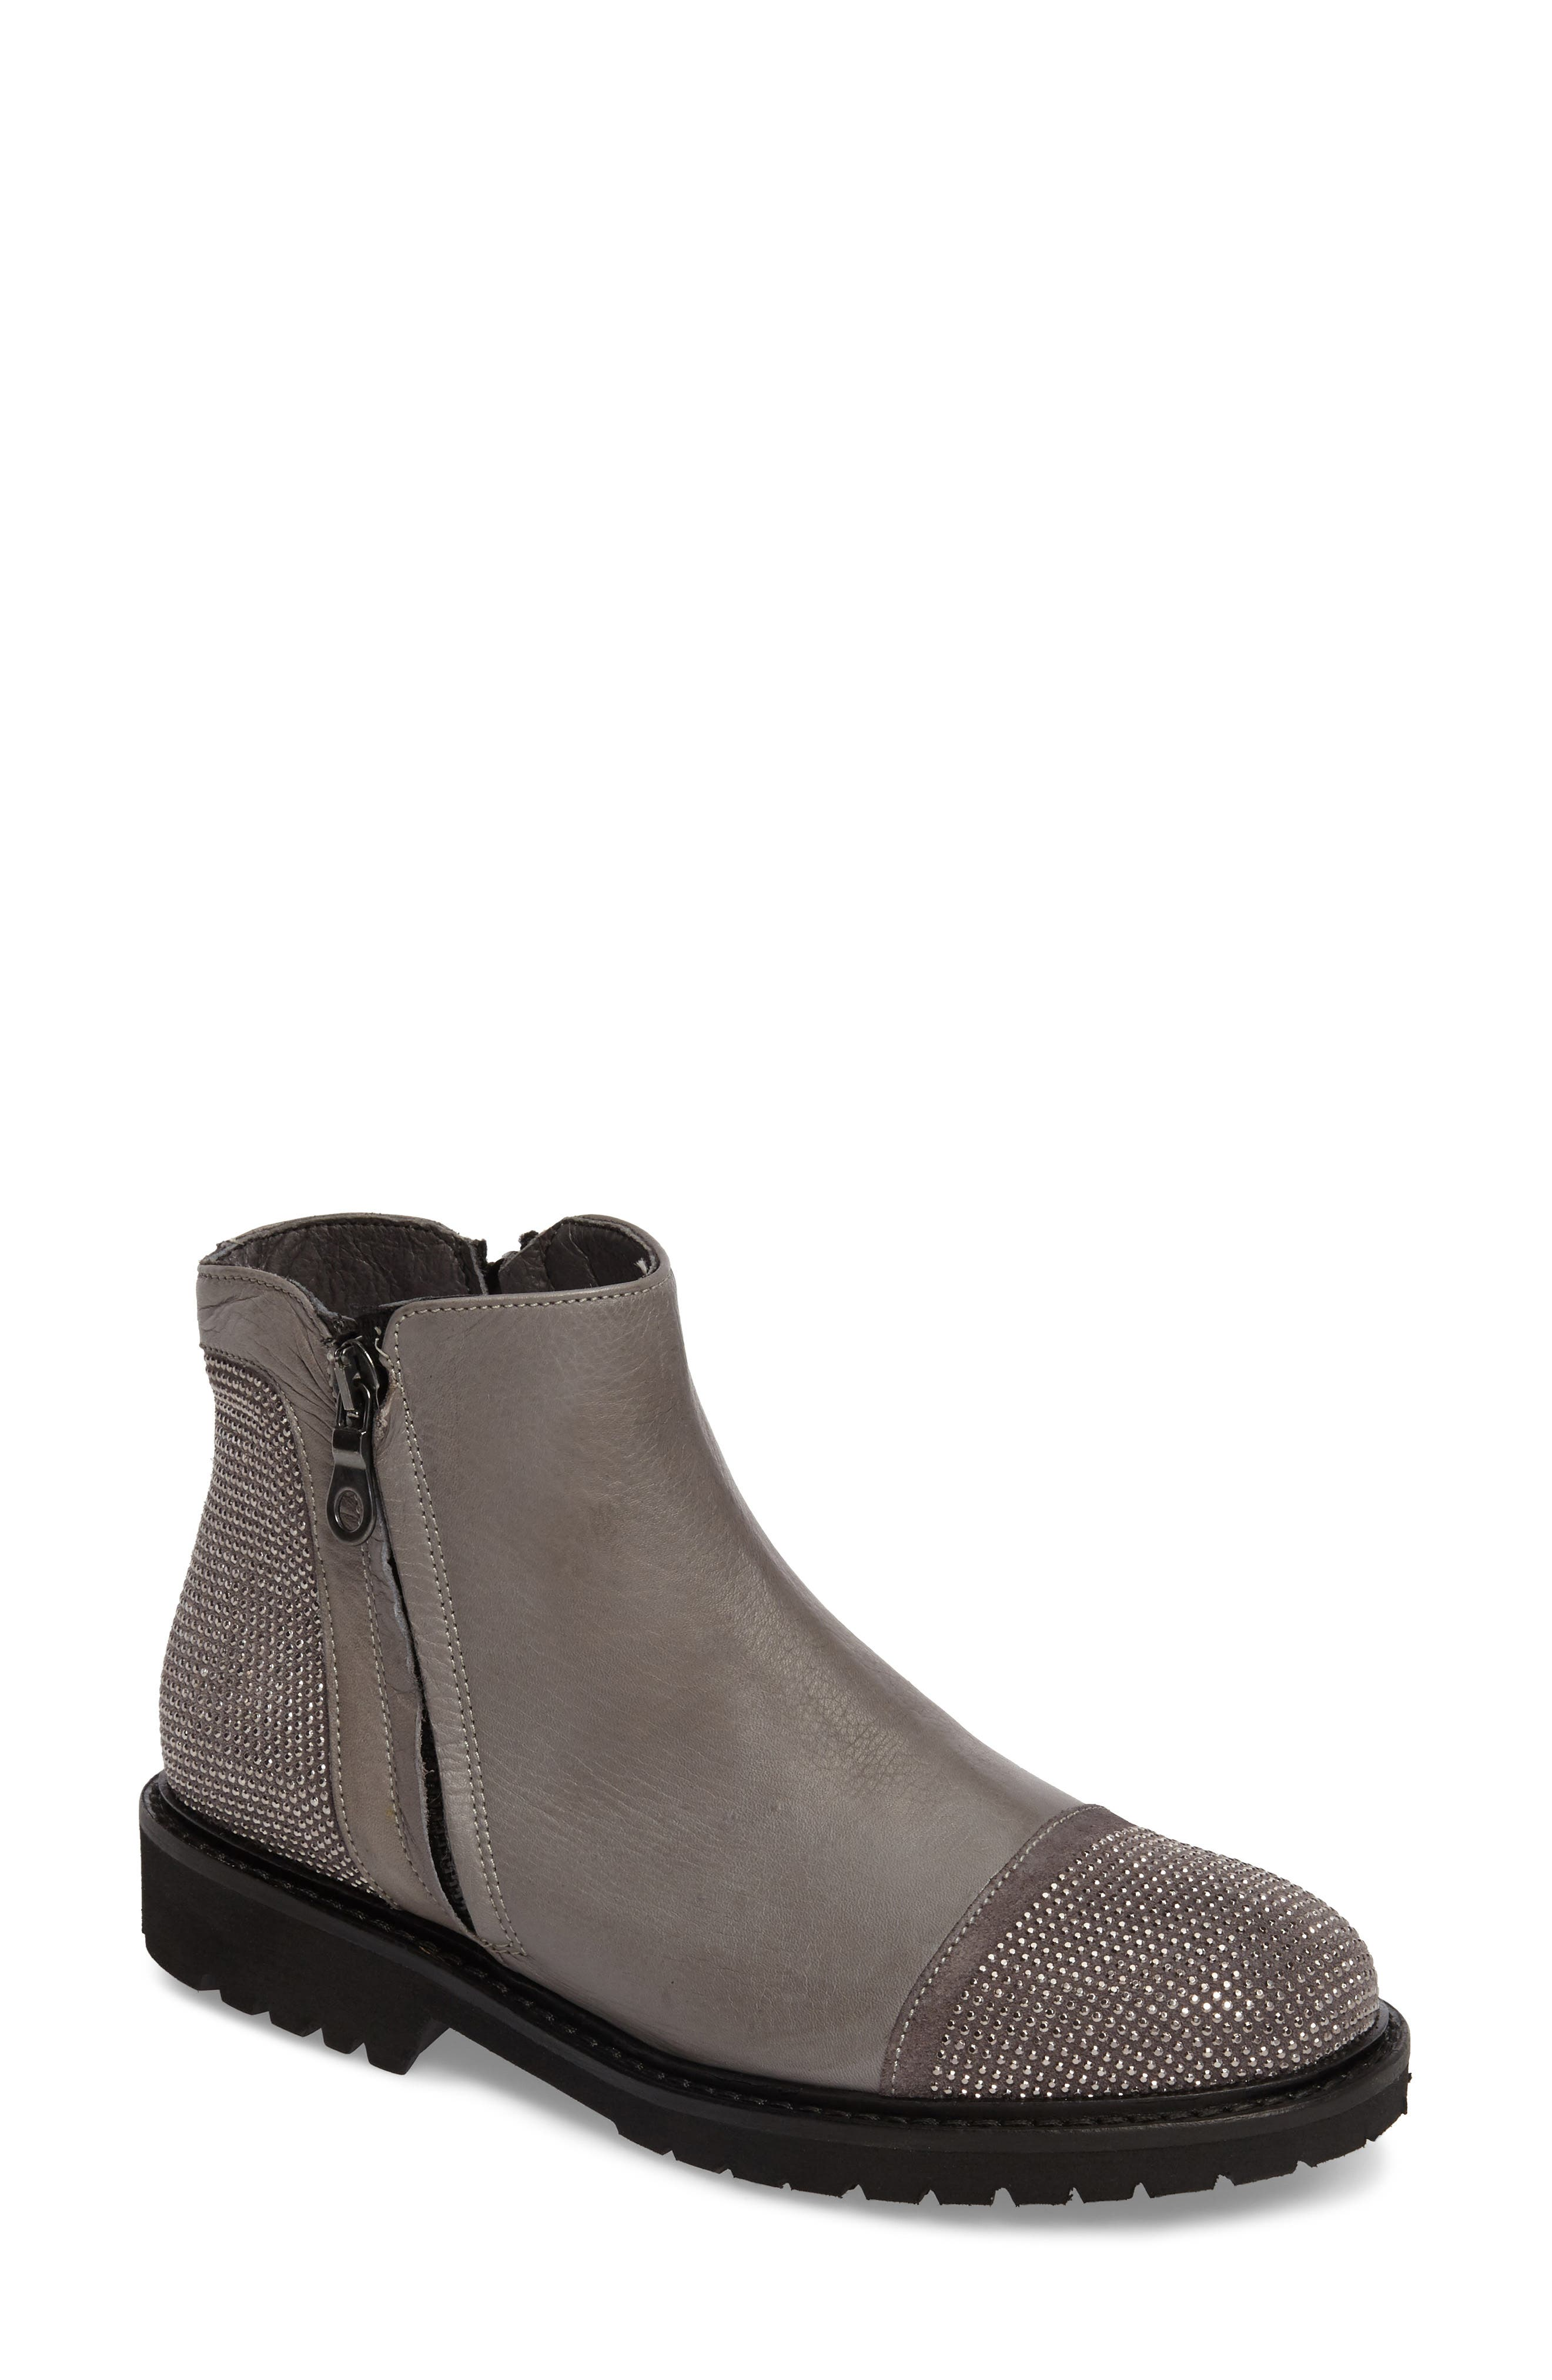 Alternate Image 1 Selected - Sheridan Mia Viva Ankle Boot (Women)